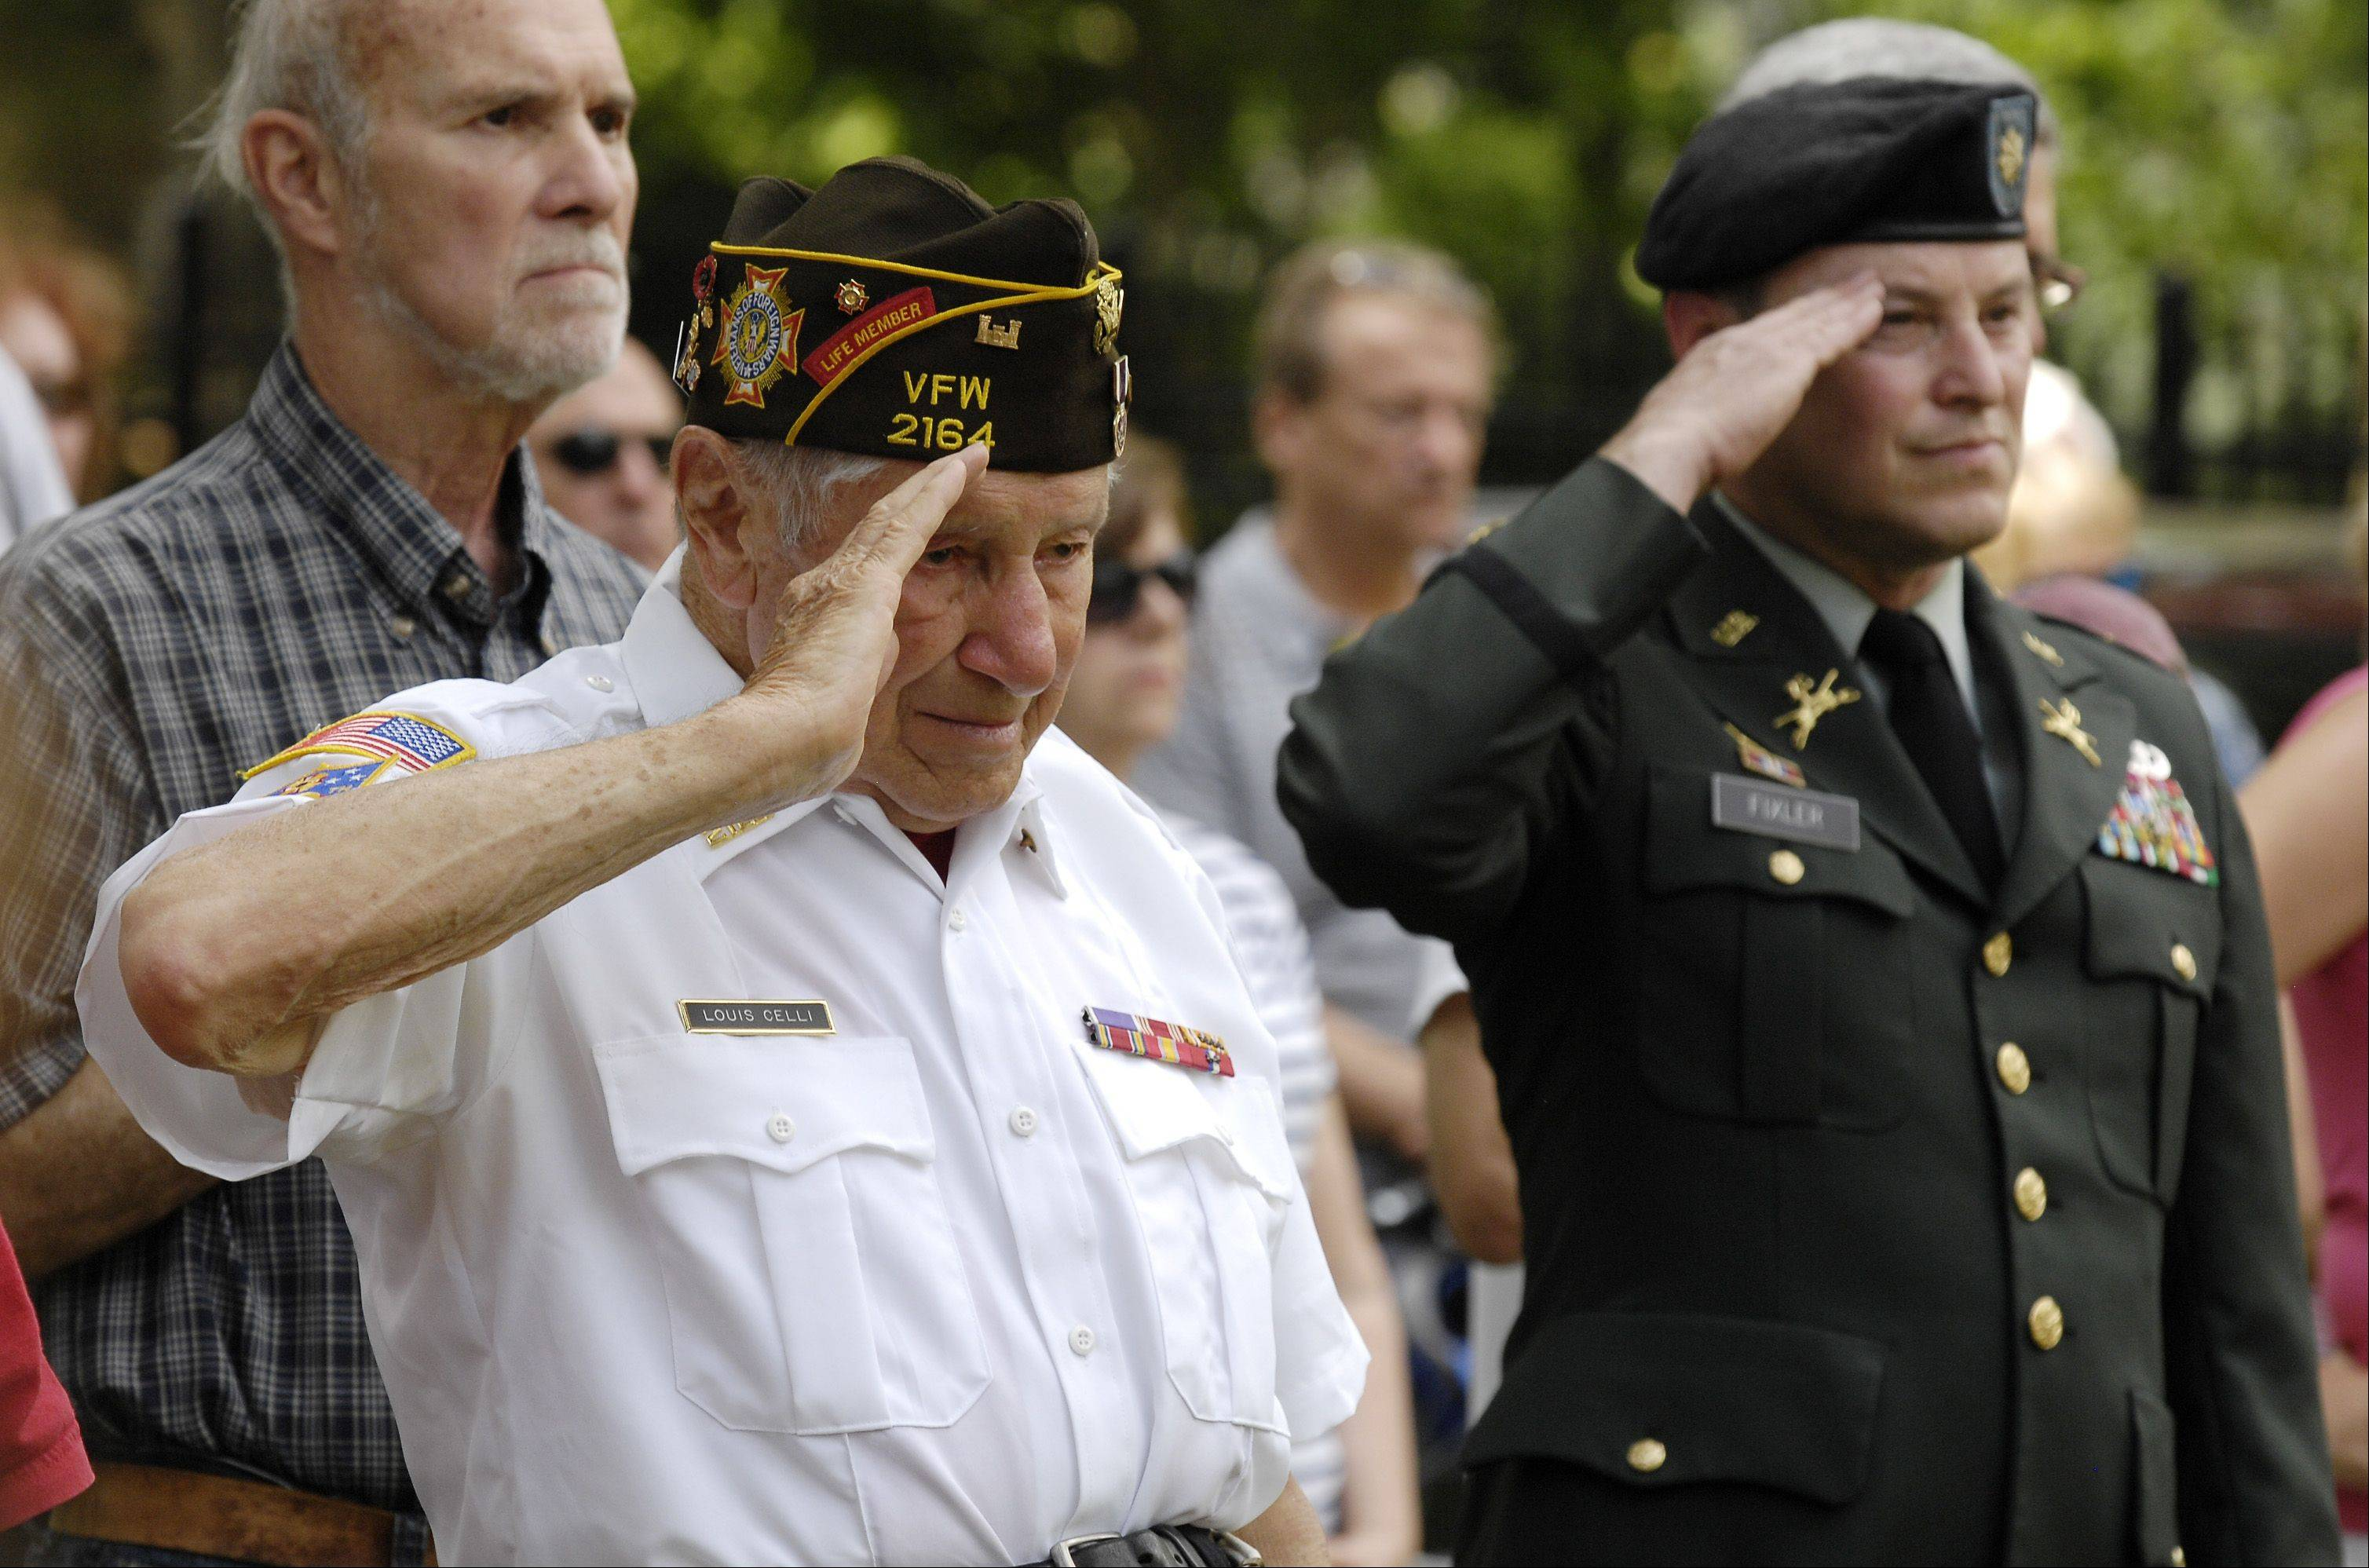 VFW Post 2164 member Louis Celli, World War II Army veteran, and Army Major Steve Fixler, give salutes during the Wheaton Memorial Day ceremony at Wheaton Cemetery, Monday.